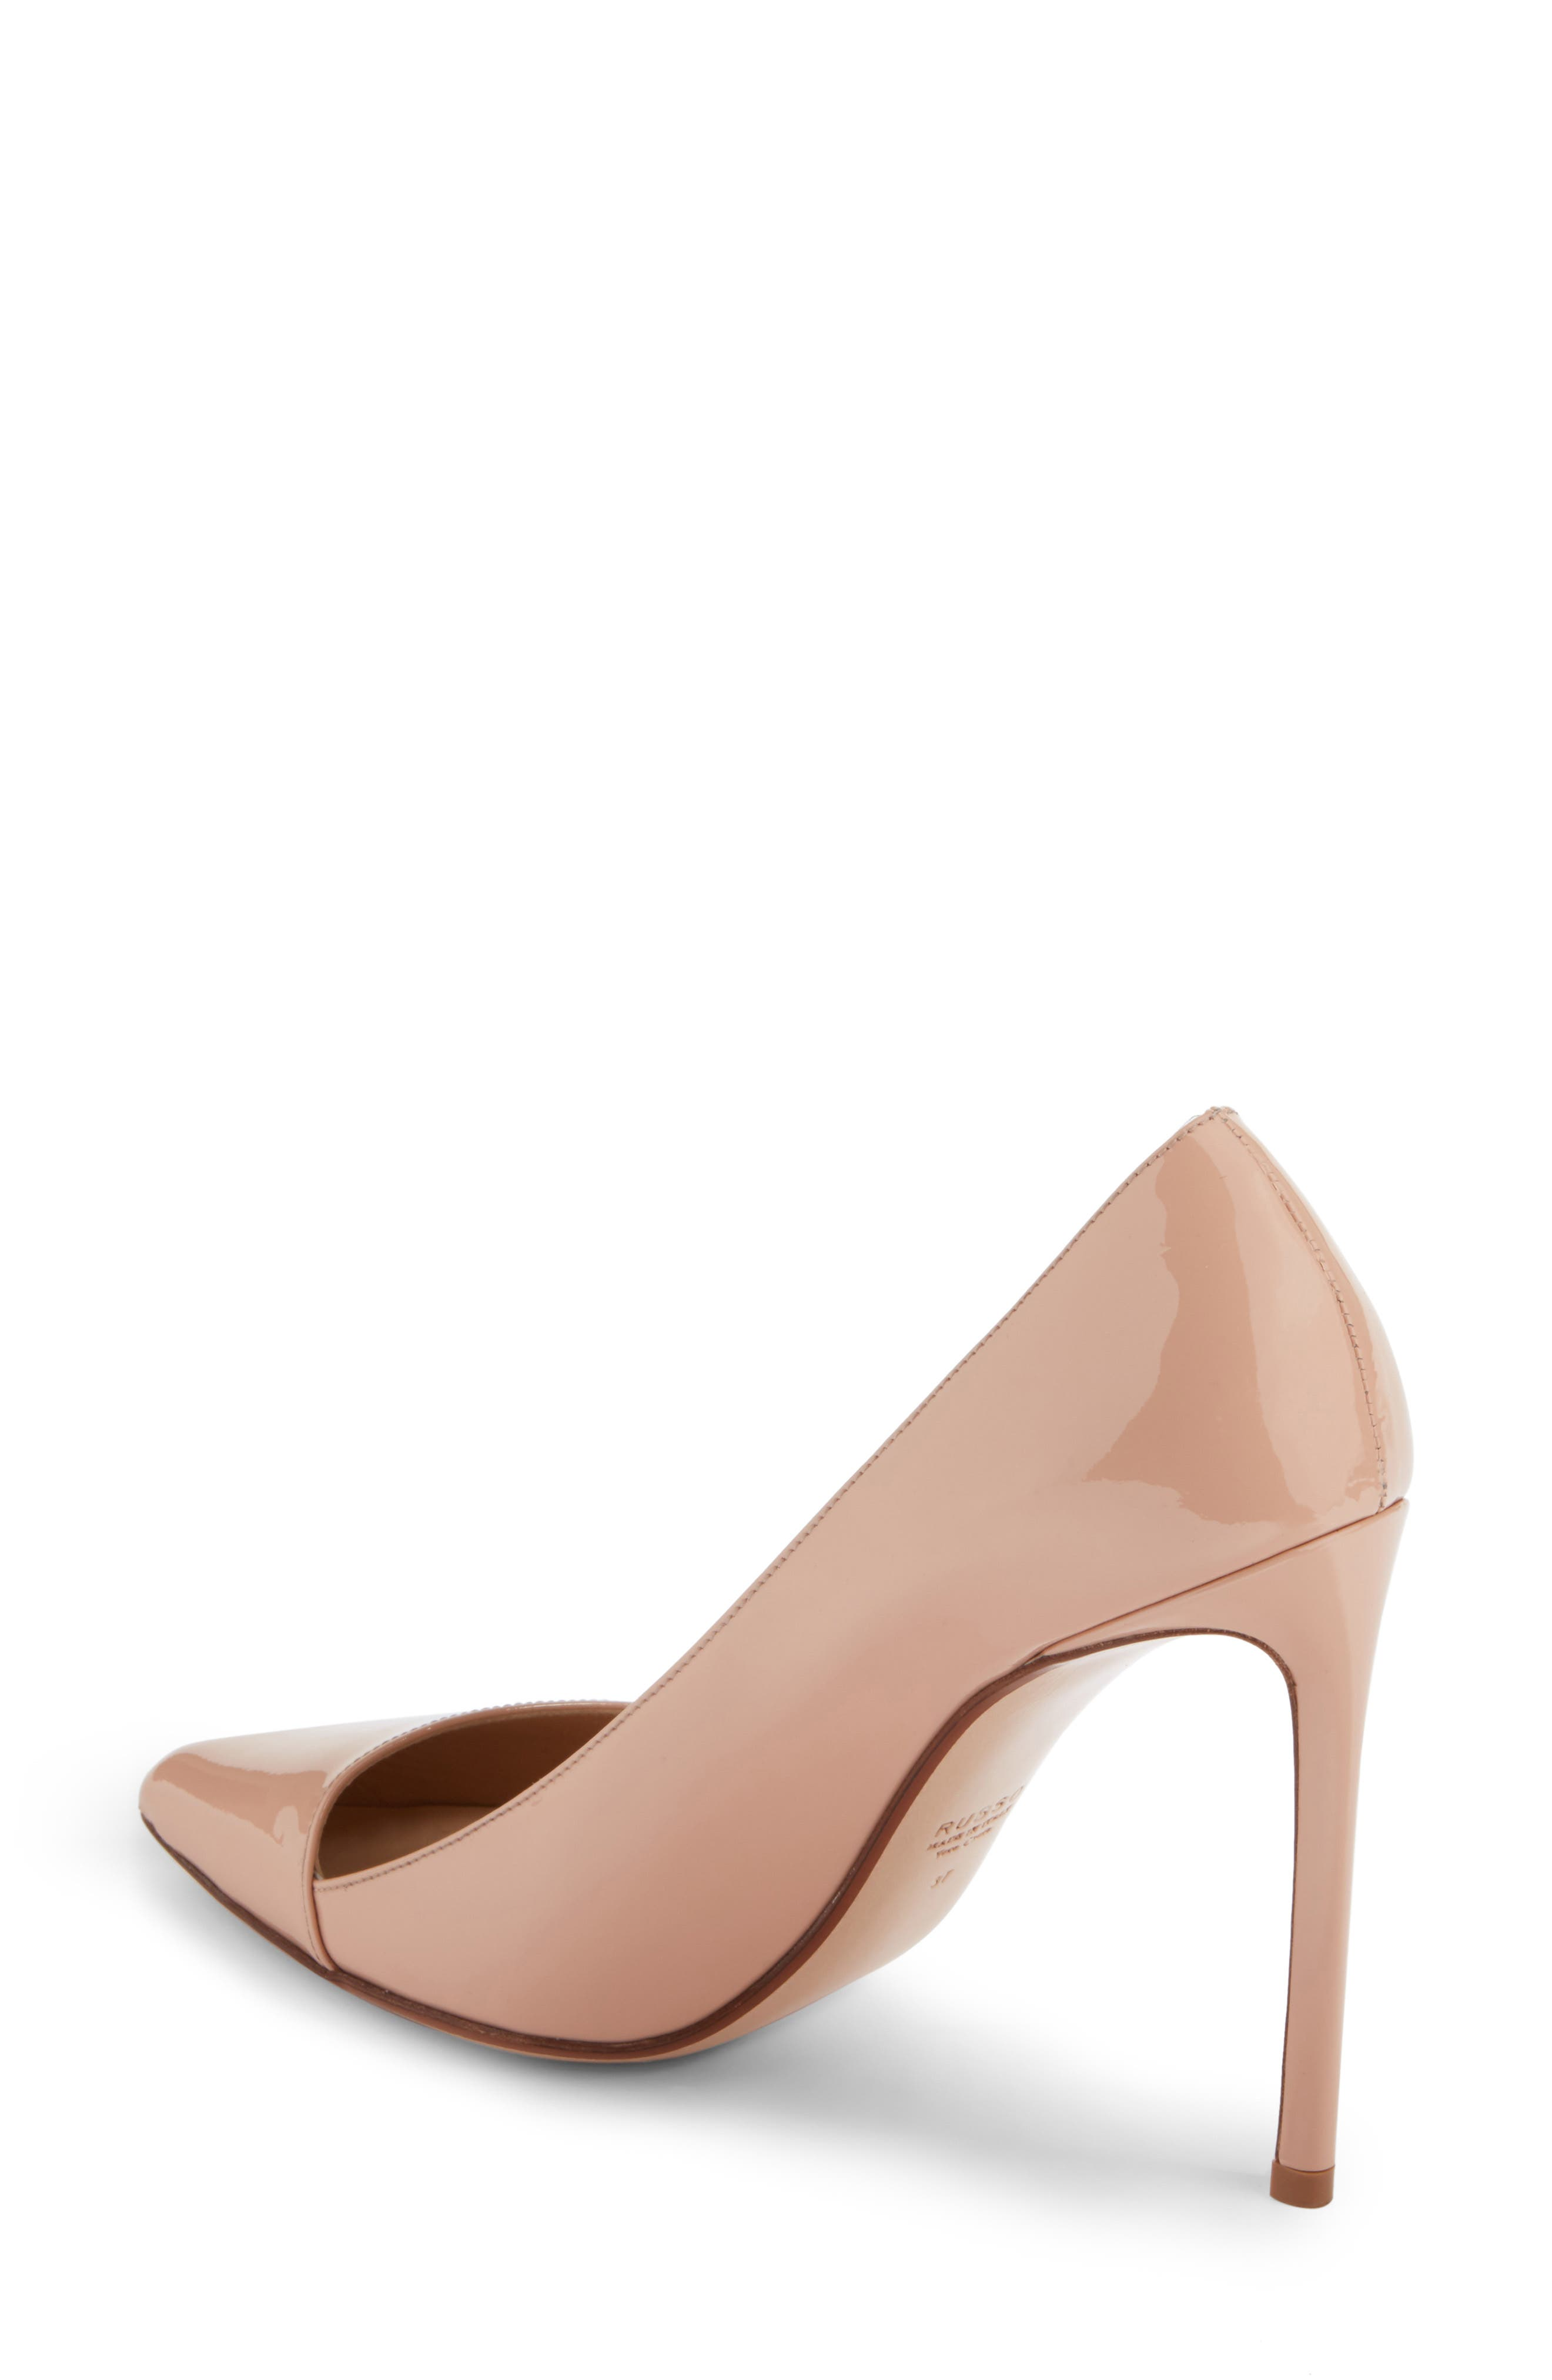 Pointy Toe Pump,                             Alternate thumbnail 2, color,                             BEIGE LEATHER